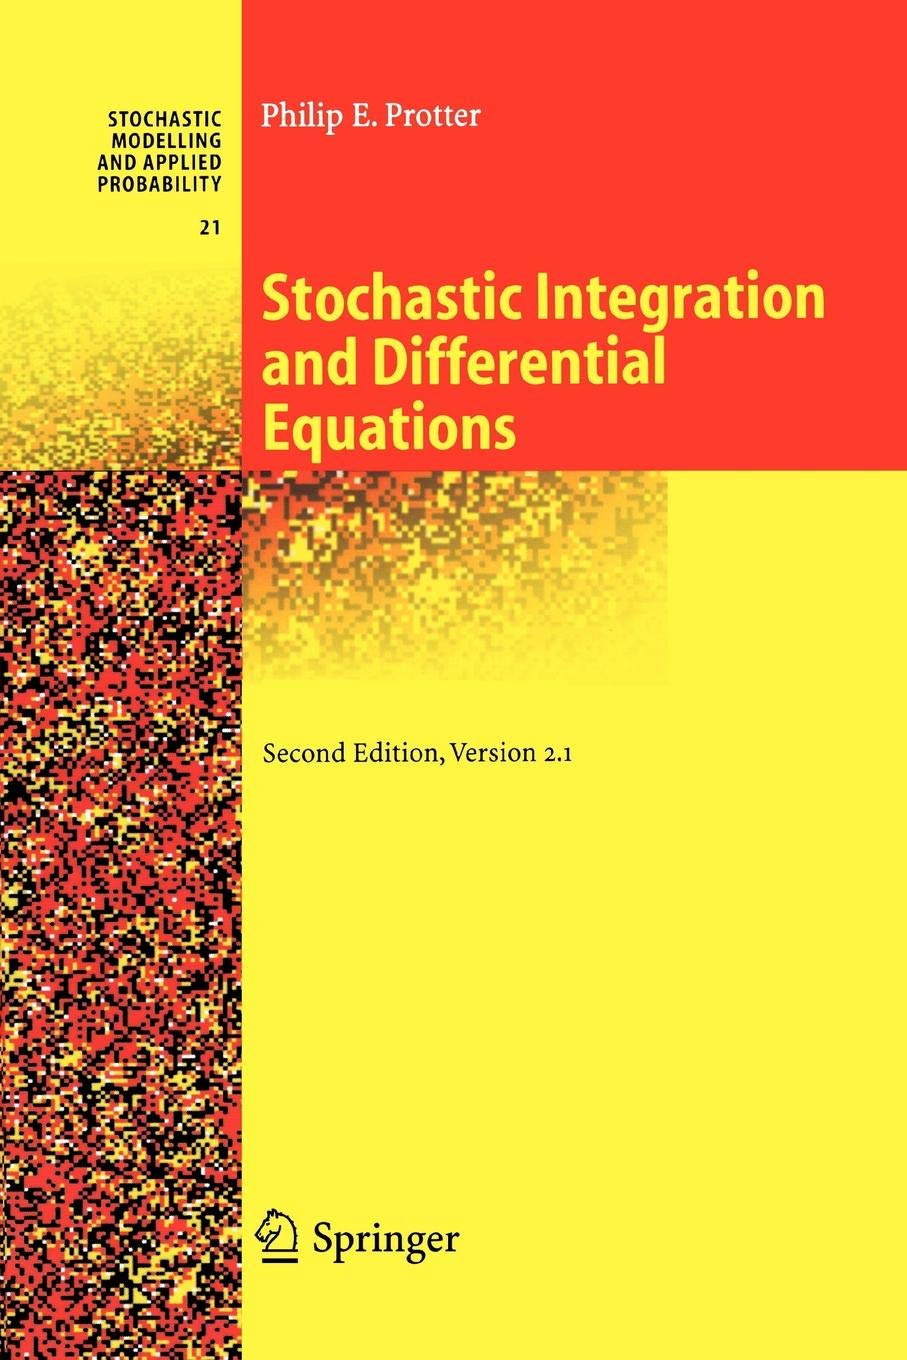 Stochastic Integration And Differential Equations  Version 2.1  Stochastic Modelling And Applied Probability Band 21